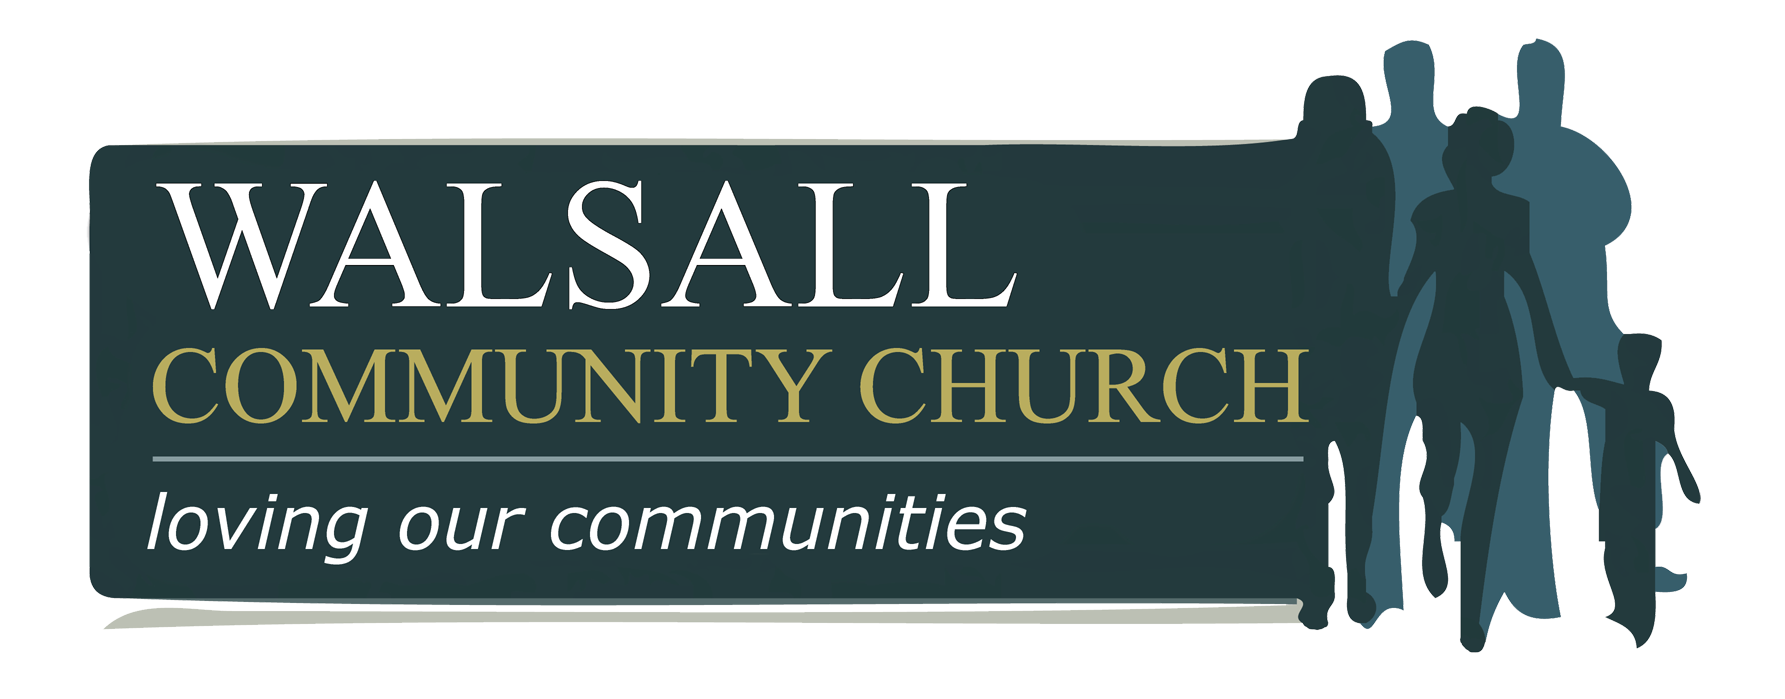 Walsall Community Church